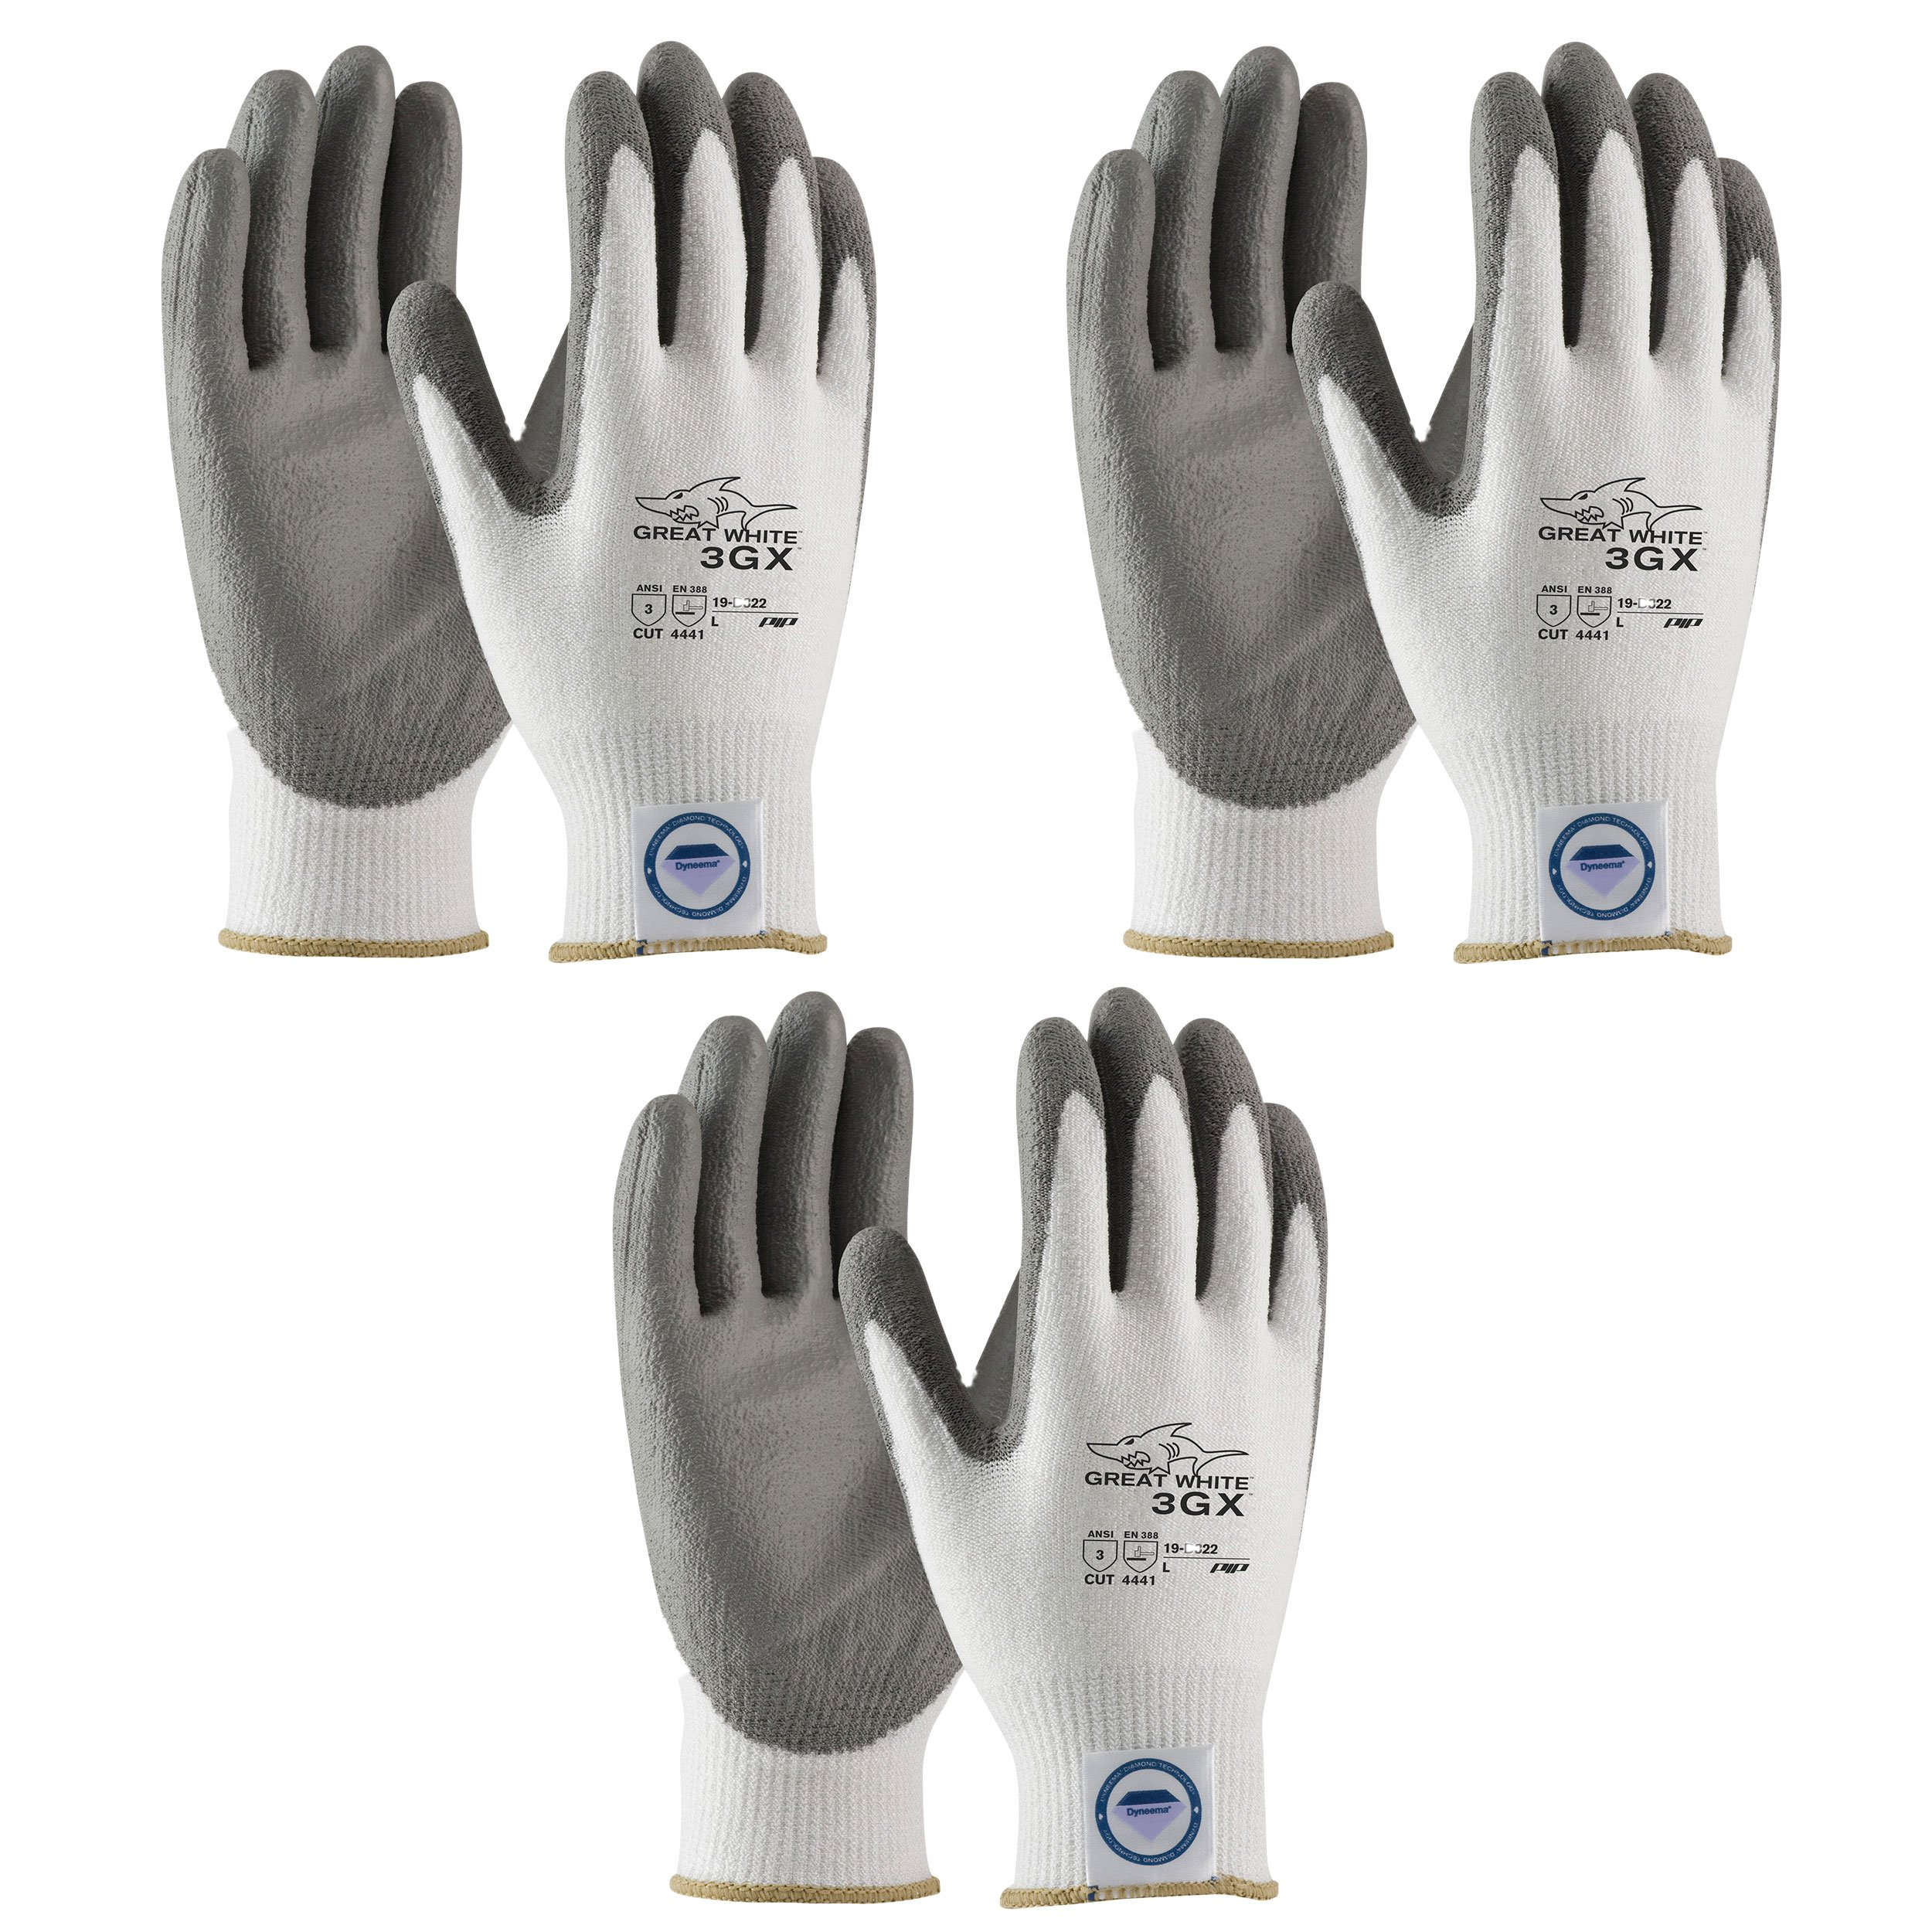 3 Pair Pack Great White 3GX 19-D322 Cut Resistant Work Gloves, ANSI Cut Level 3,Dyneema/Lycra with Polyurethane Coated Palm and Fingers, Gray/White (Small)